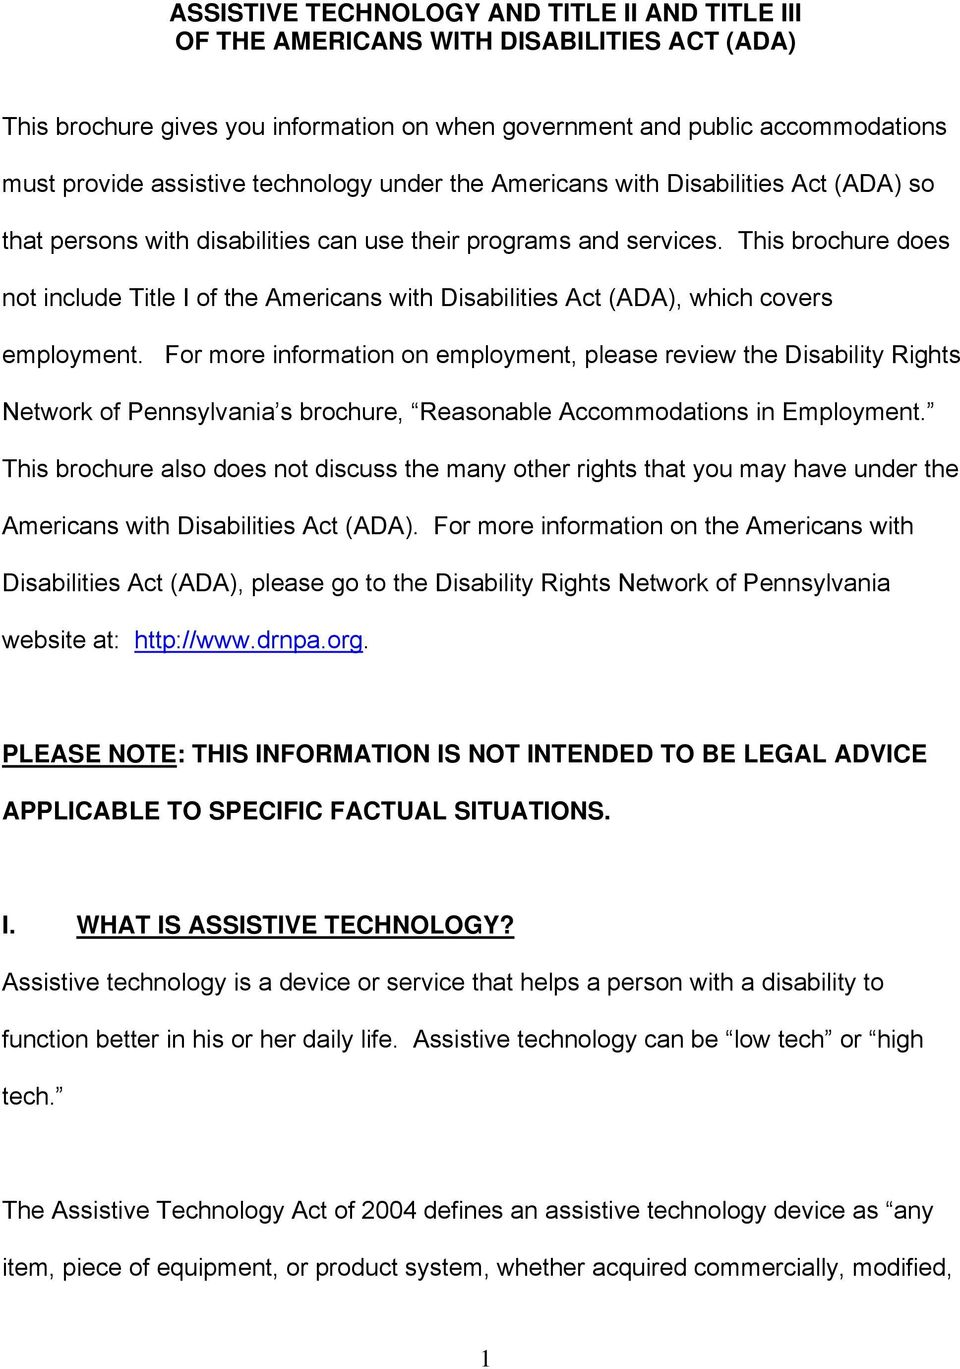 This brochure does not include Title I of the Americans with Disabilities Act (ADA), which covers employment.